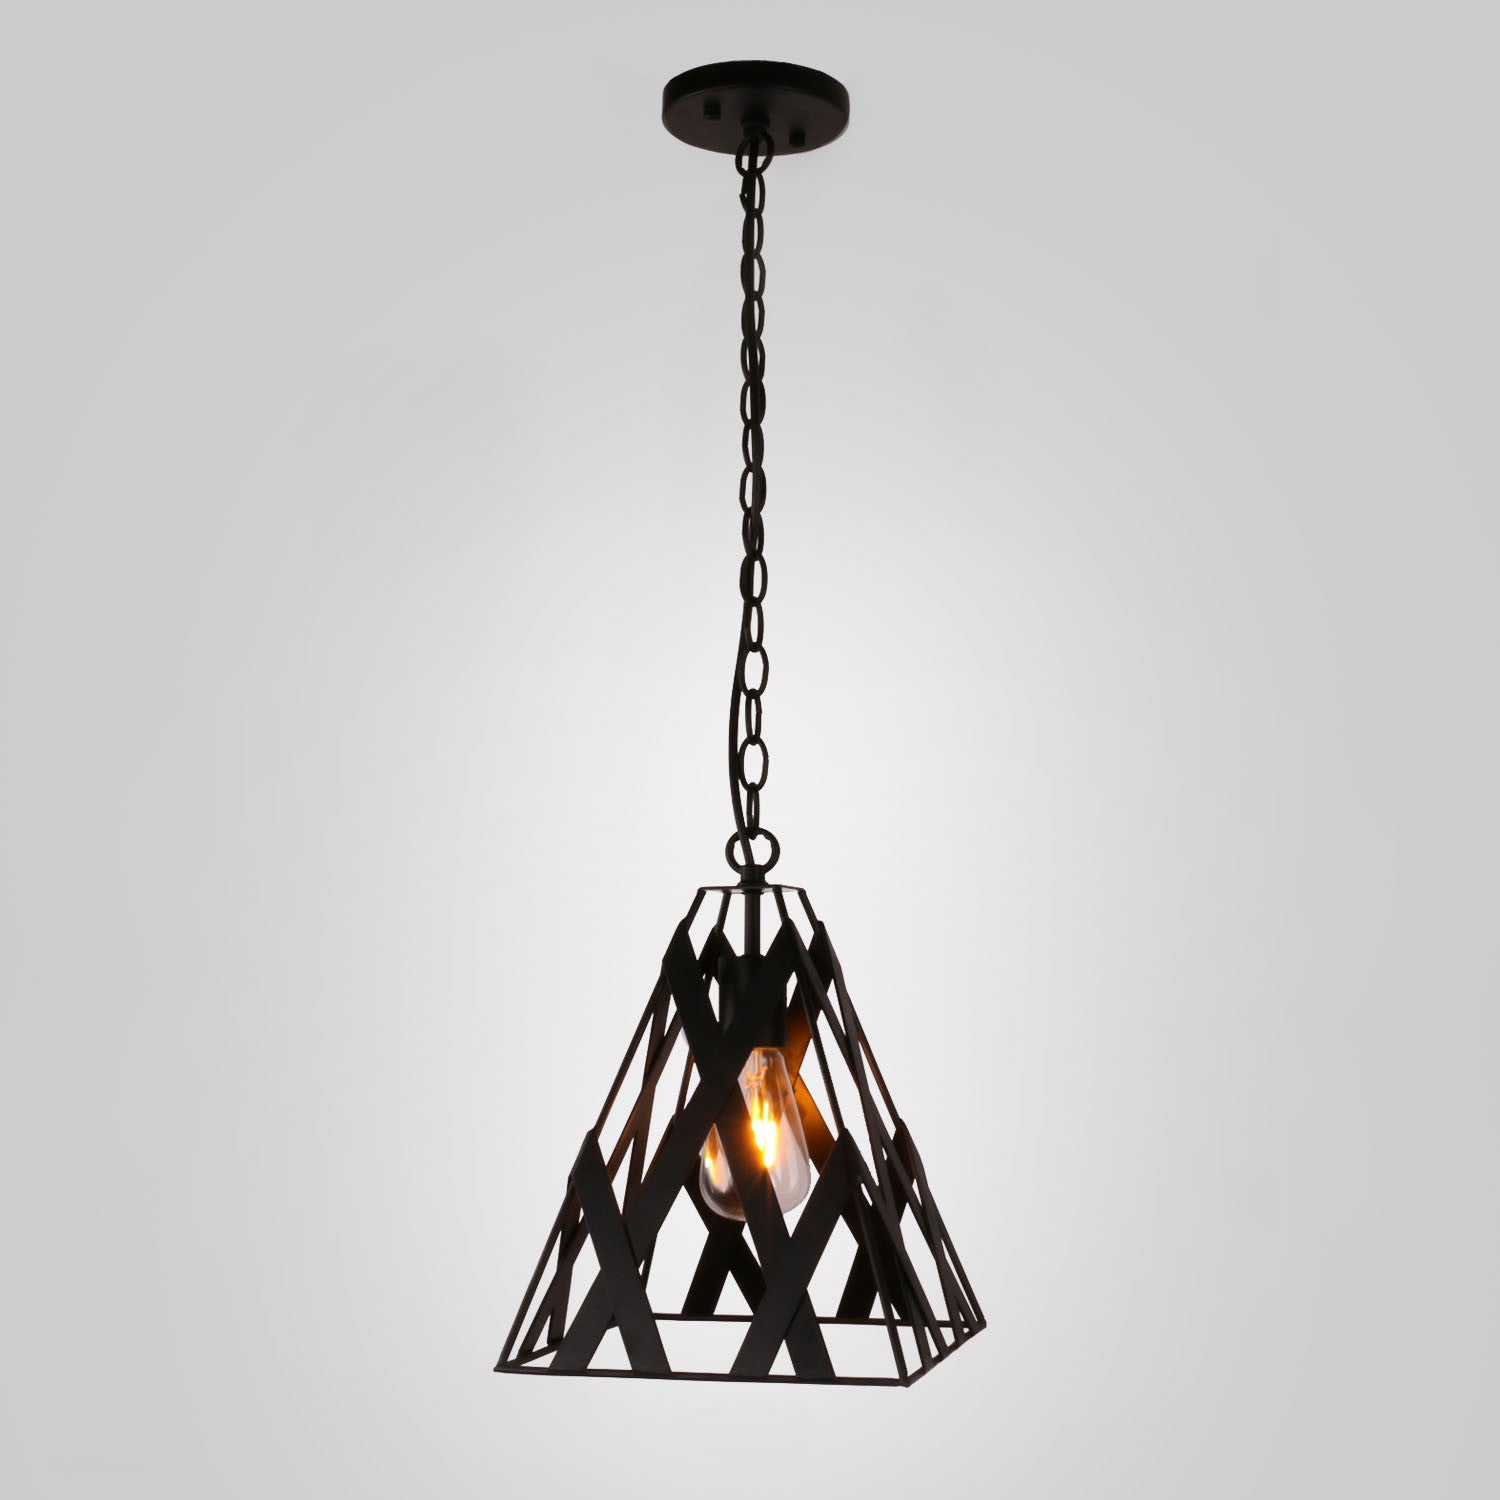 light shop gubi grasshoppa in black by pendant jetblack lamp lighting brands jet designer brass